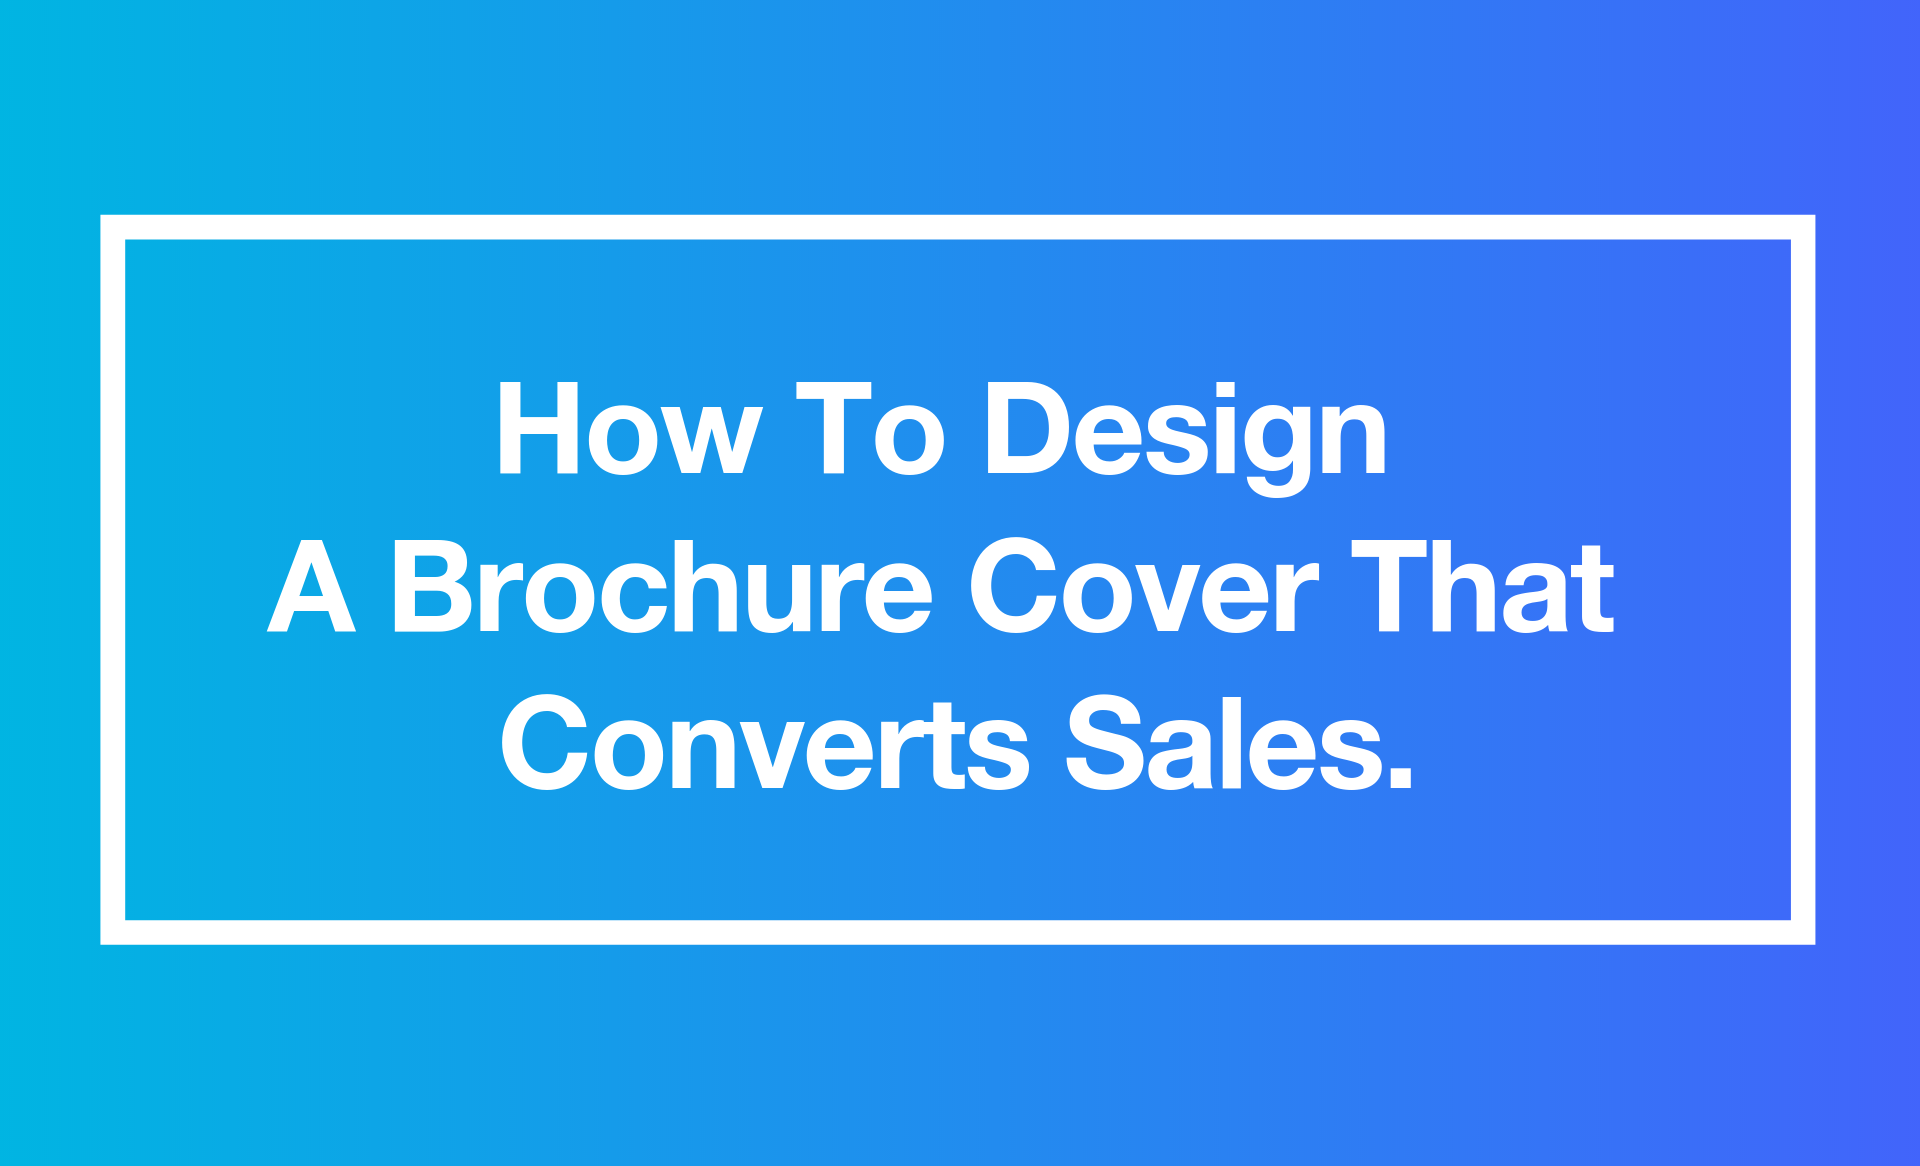 How To Design A Brochure Cover that Converts Sales